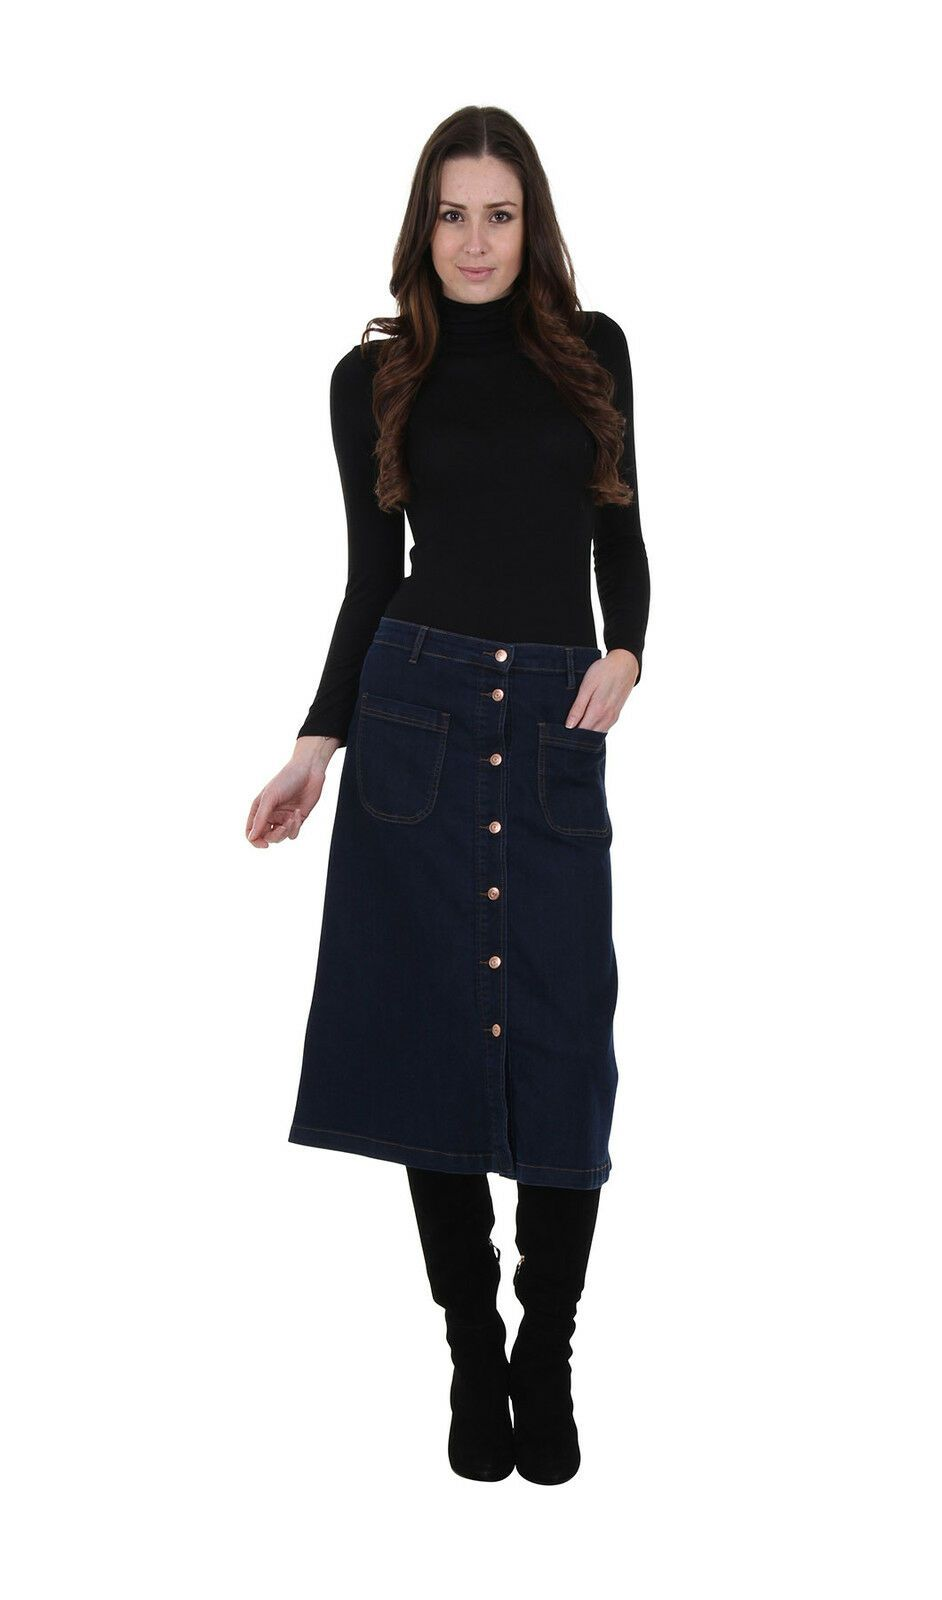 Full frontal pose with hand in front-left pocket of button front dark wash denim midi skirt from Dungarees Online.